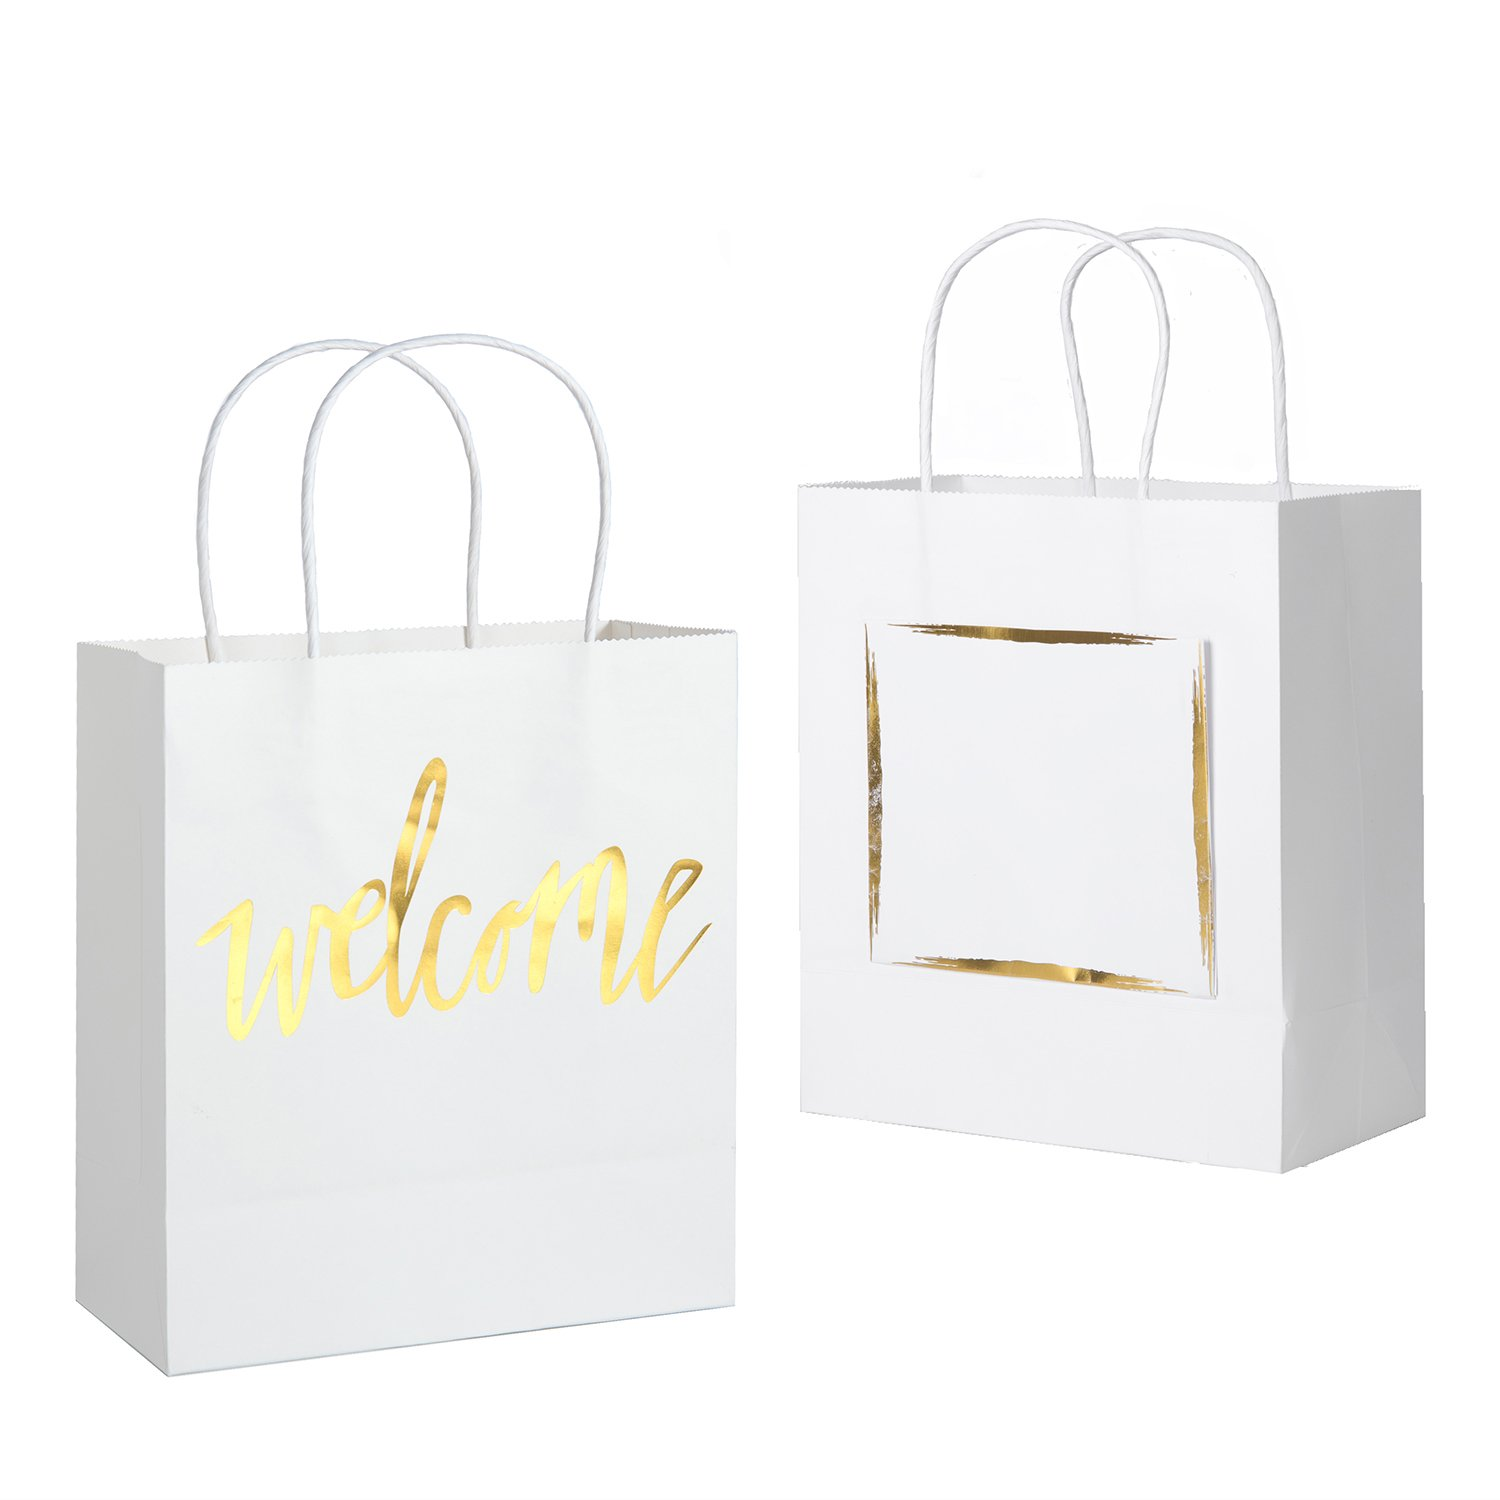 Ling's Moment Set of 25 White Welcome Gift Bags with Gold Foil Pocket for Wedding Hotel Guests, Weekend Wedding Guests, Destination Wedding Favors